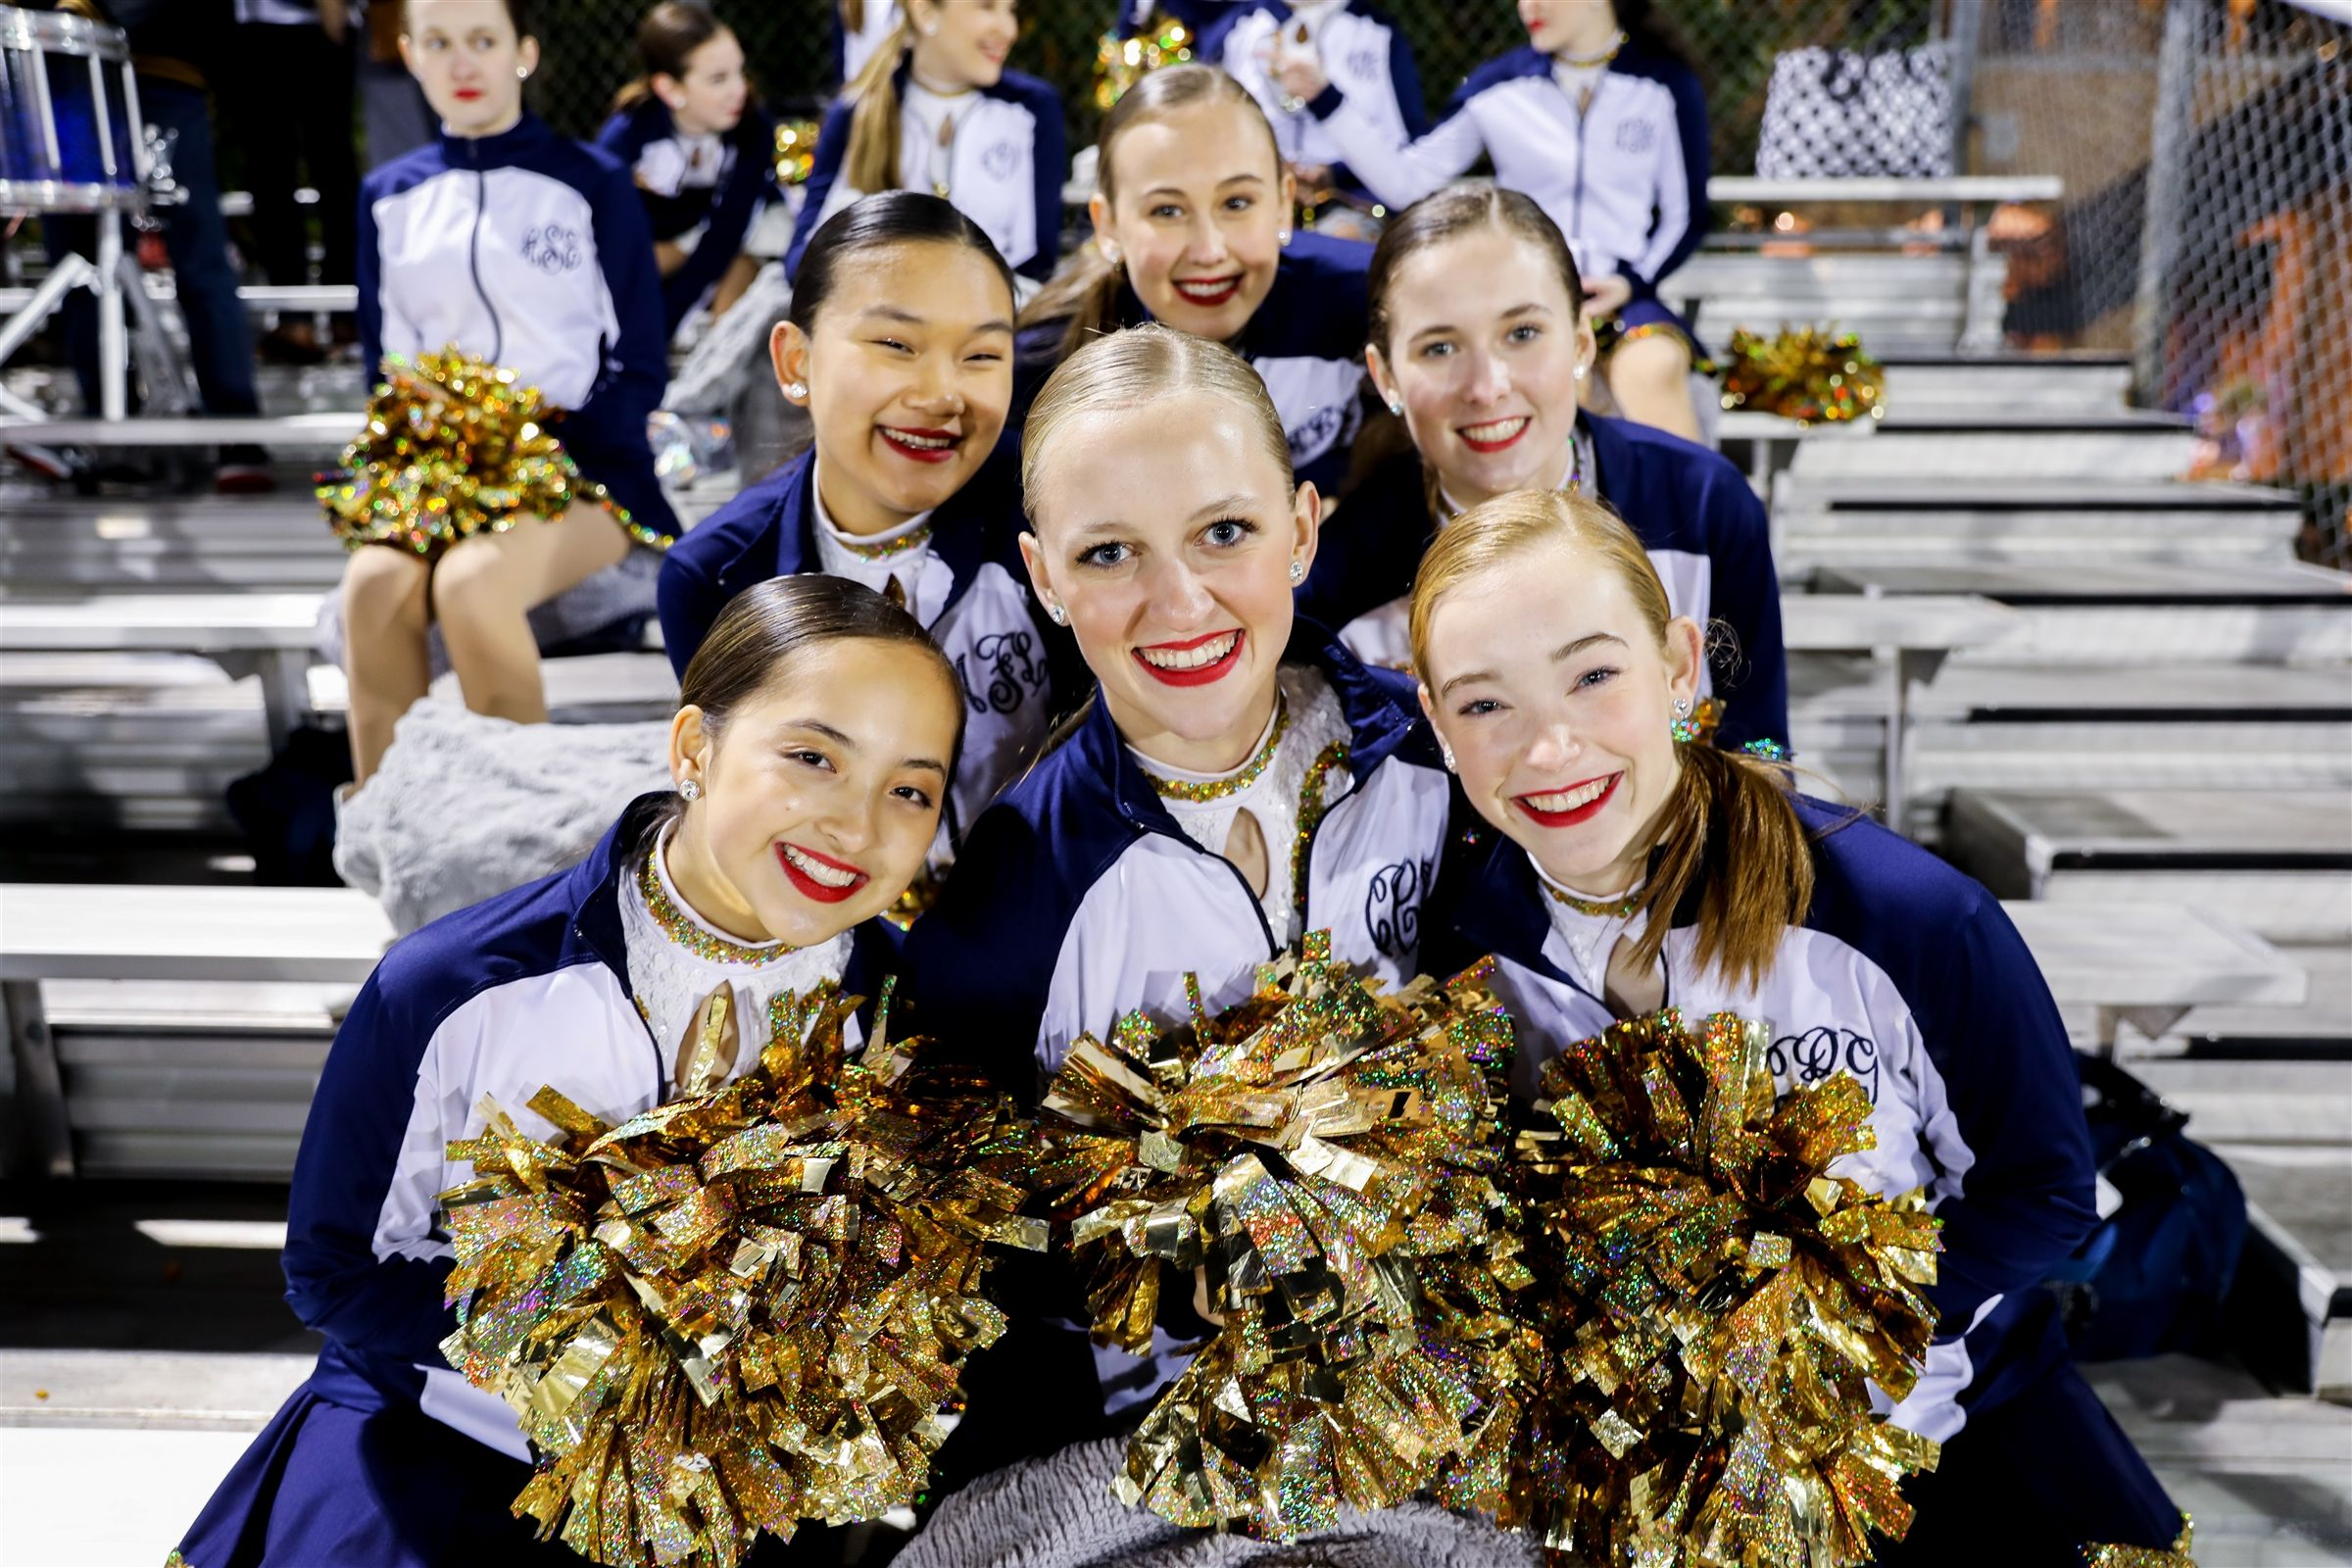 High school dance team members gathering in the stands for a home football game at Second Baptist School